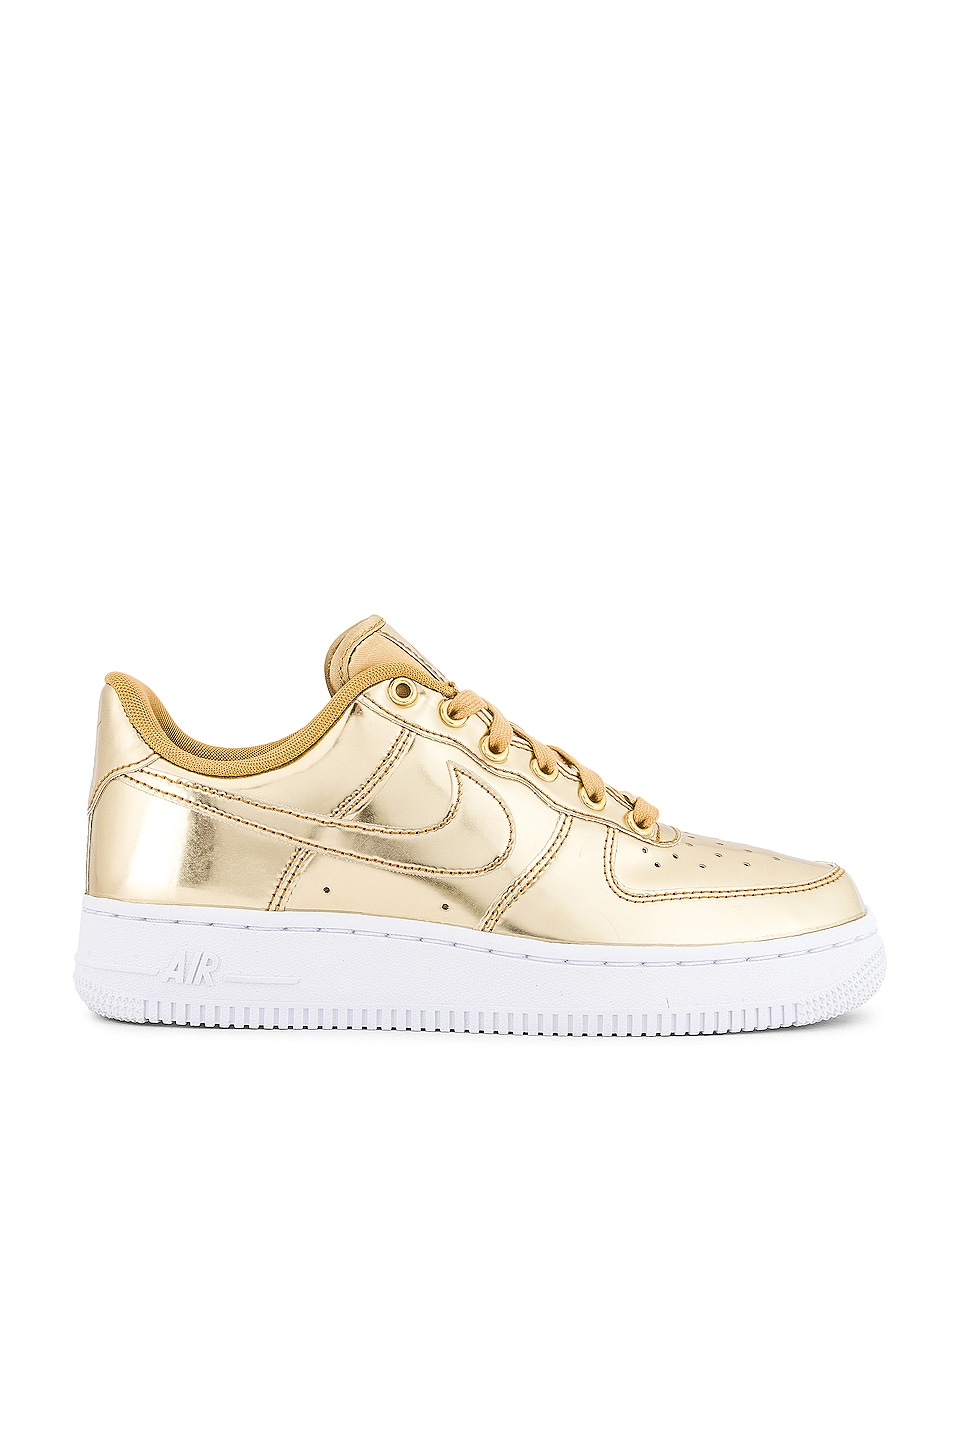 Nike Air Force 1 Sneaker in Metallic Gold, Club Gold & White